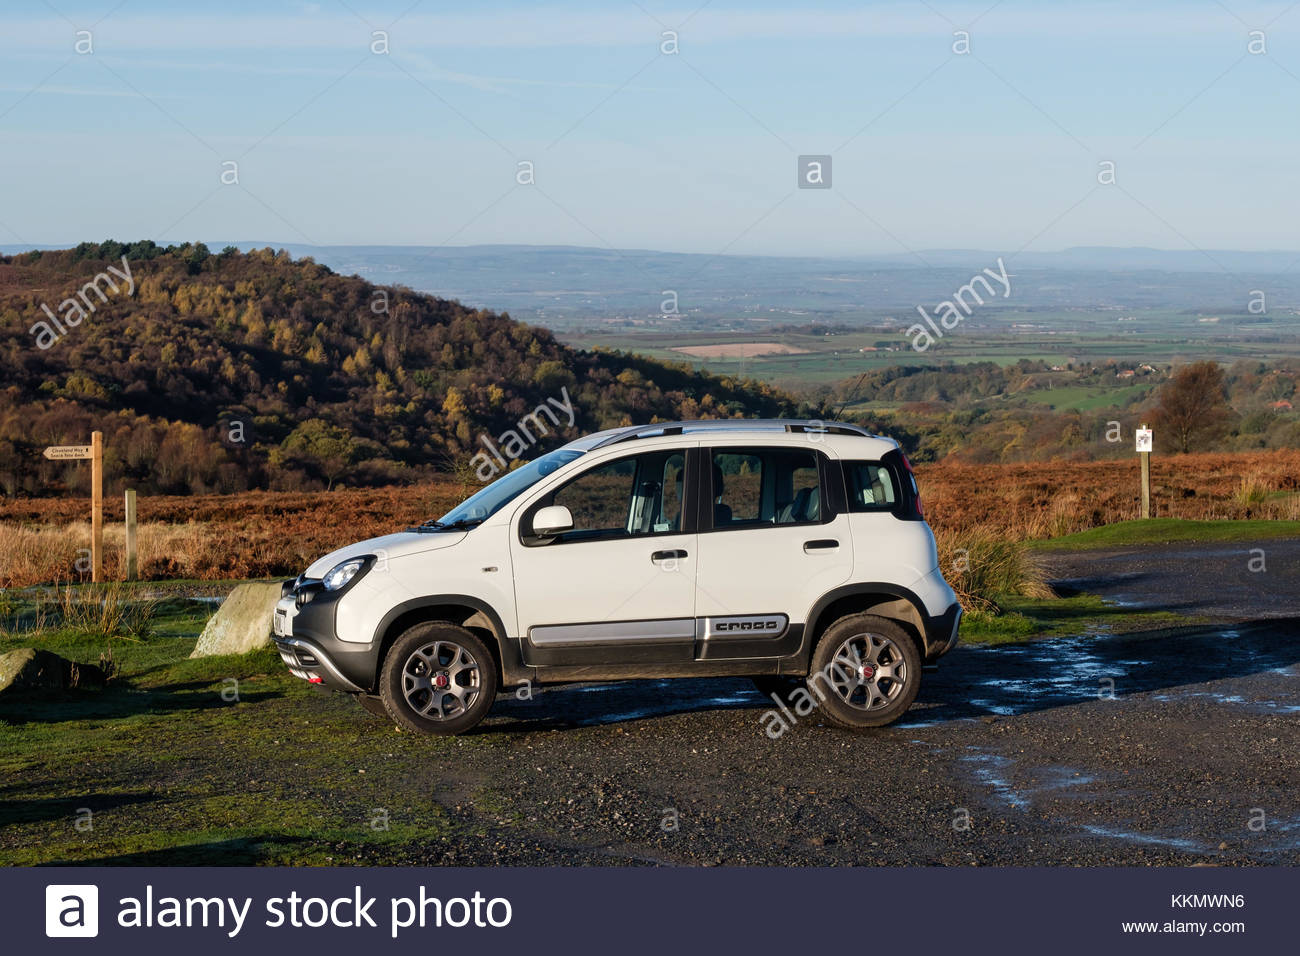 fiat panda stock photos fiat panda stock images alamy. Black Bedroom Furniture Sets. Home Design Ideas